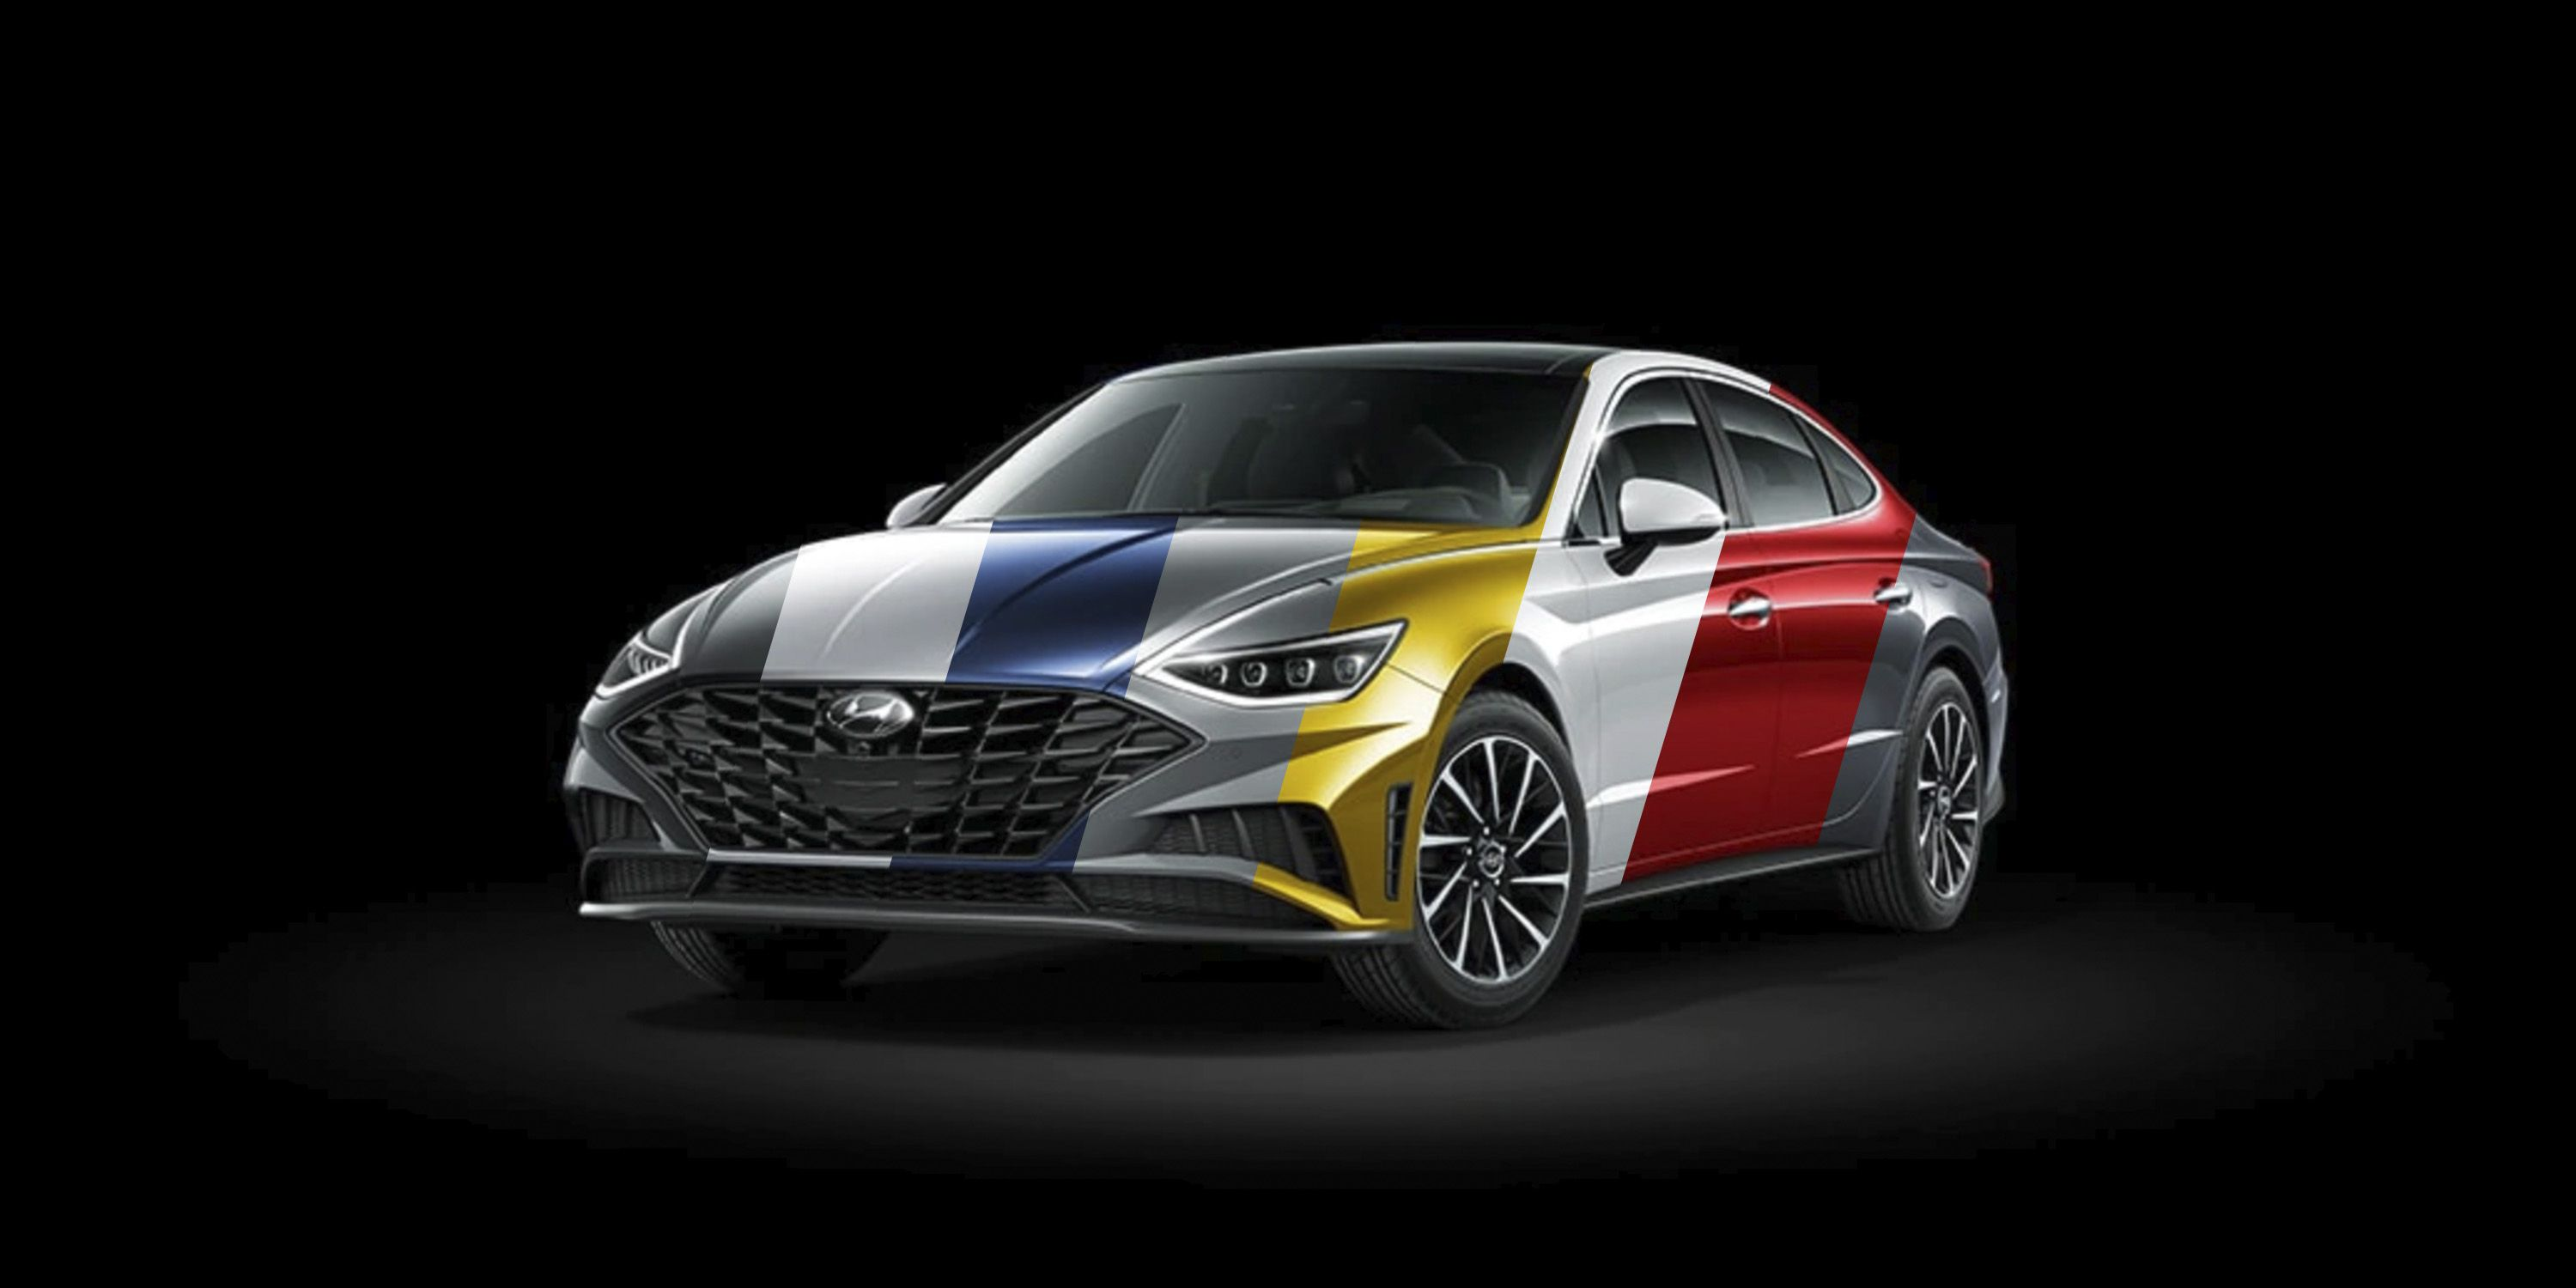 2020 Hyundai Sonata Colors It Comes In Yellow Red Blue And More